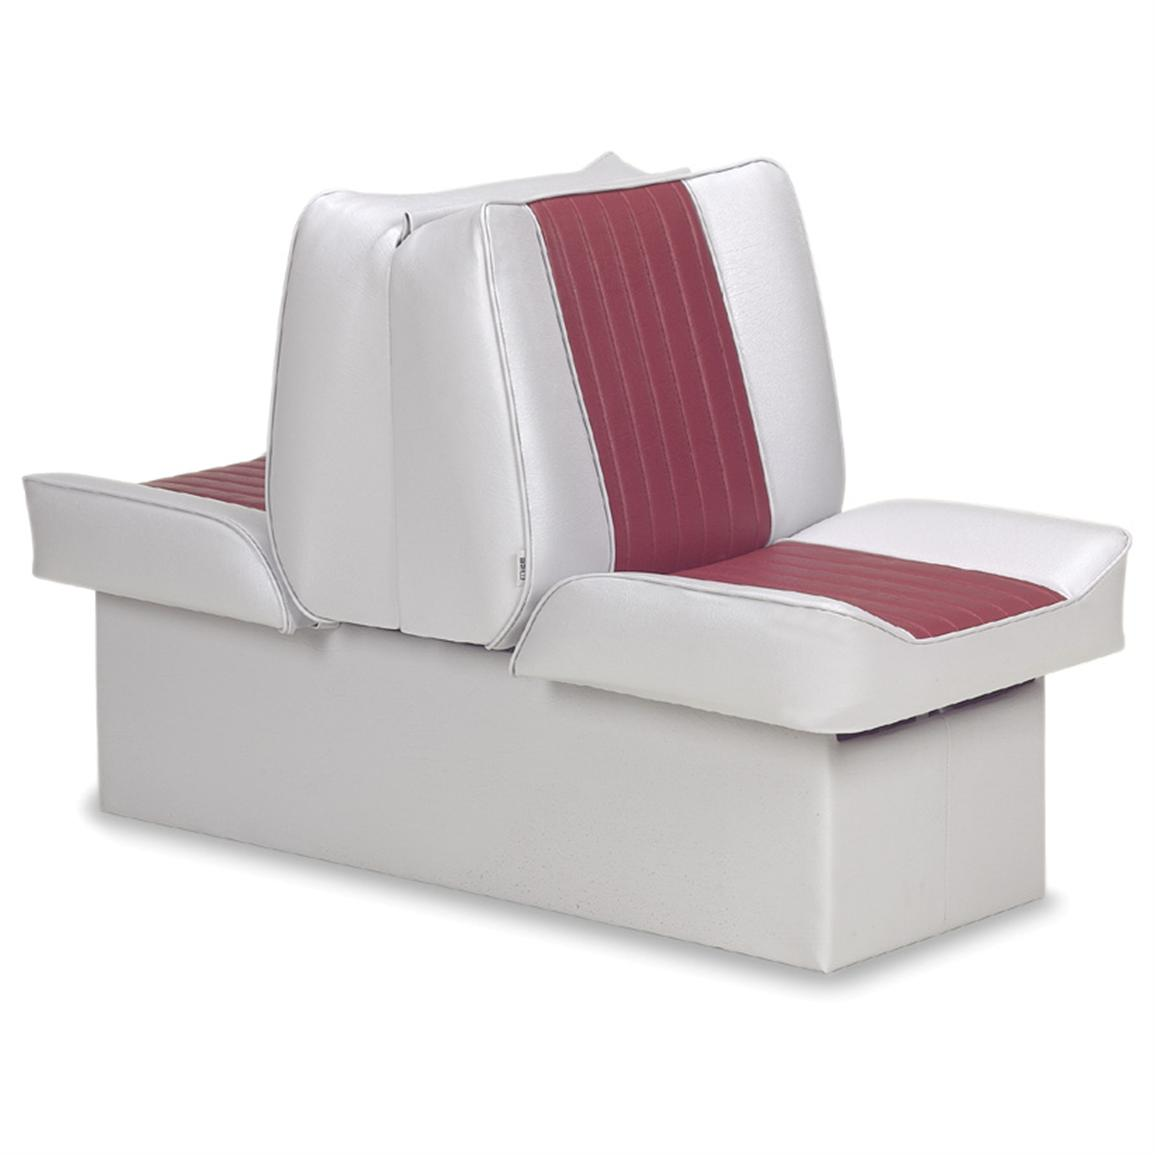 Wise Deluxe Boat Lounge Seat, Grey / Red